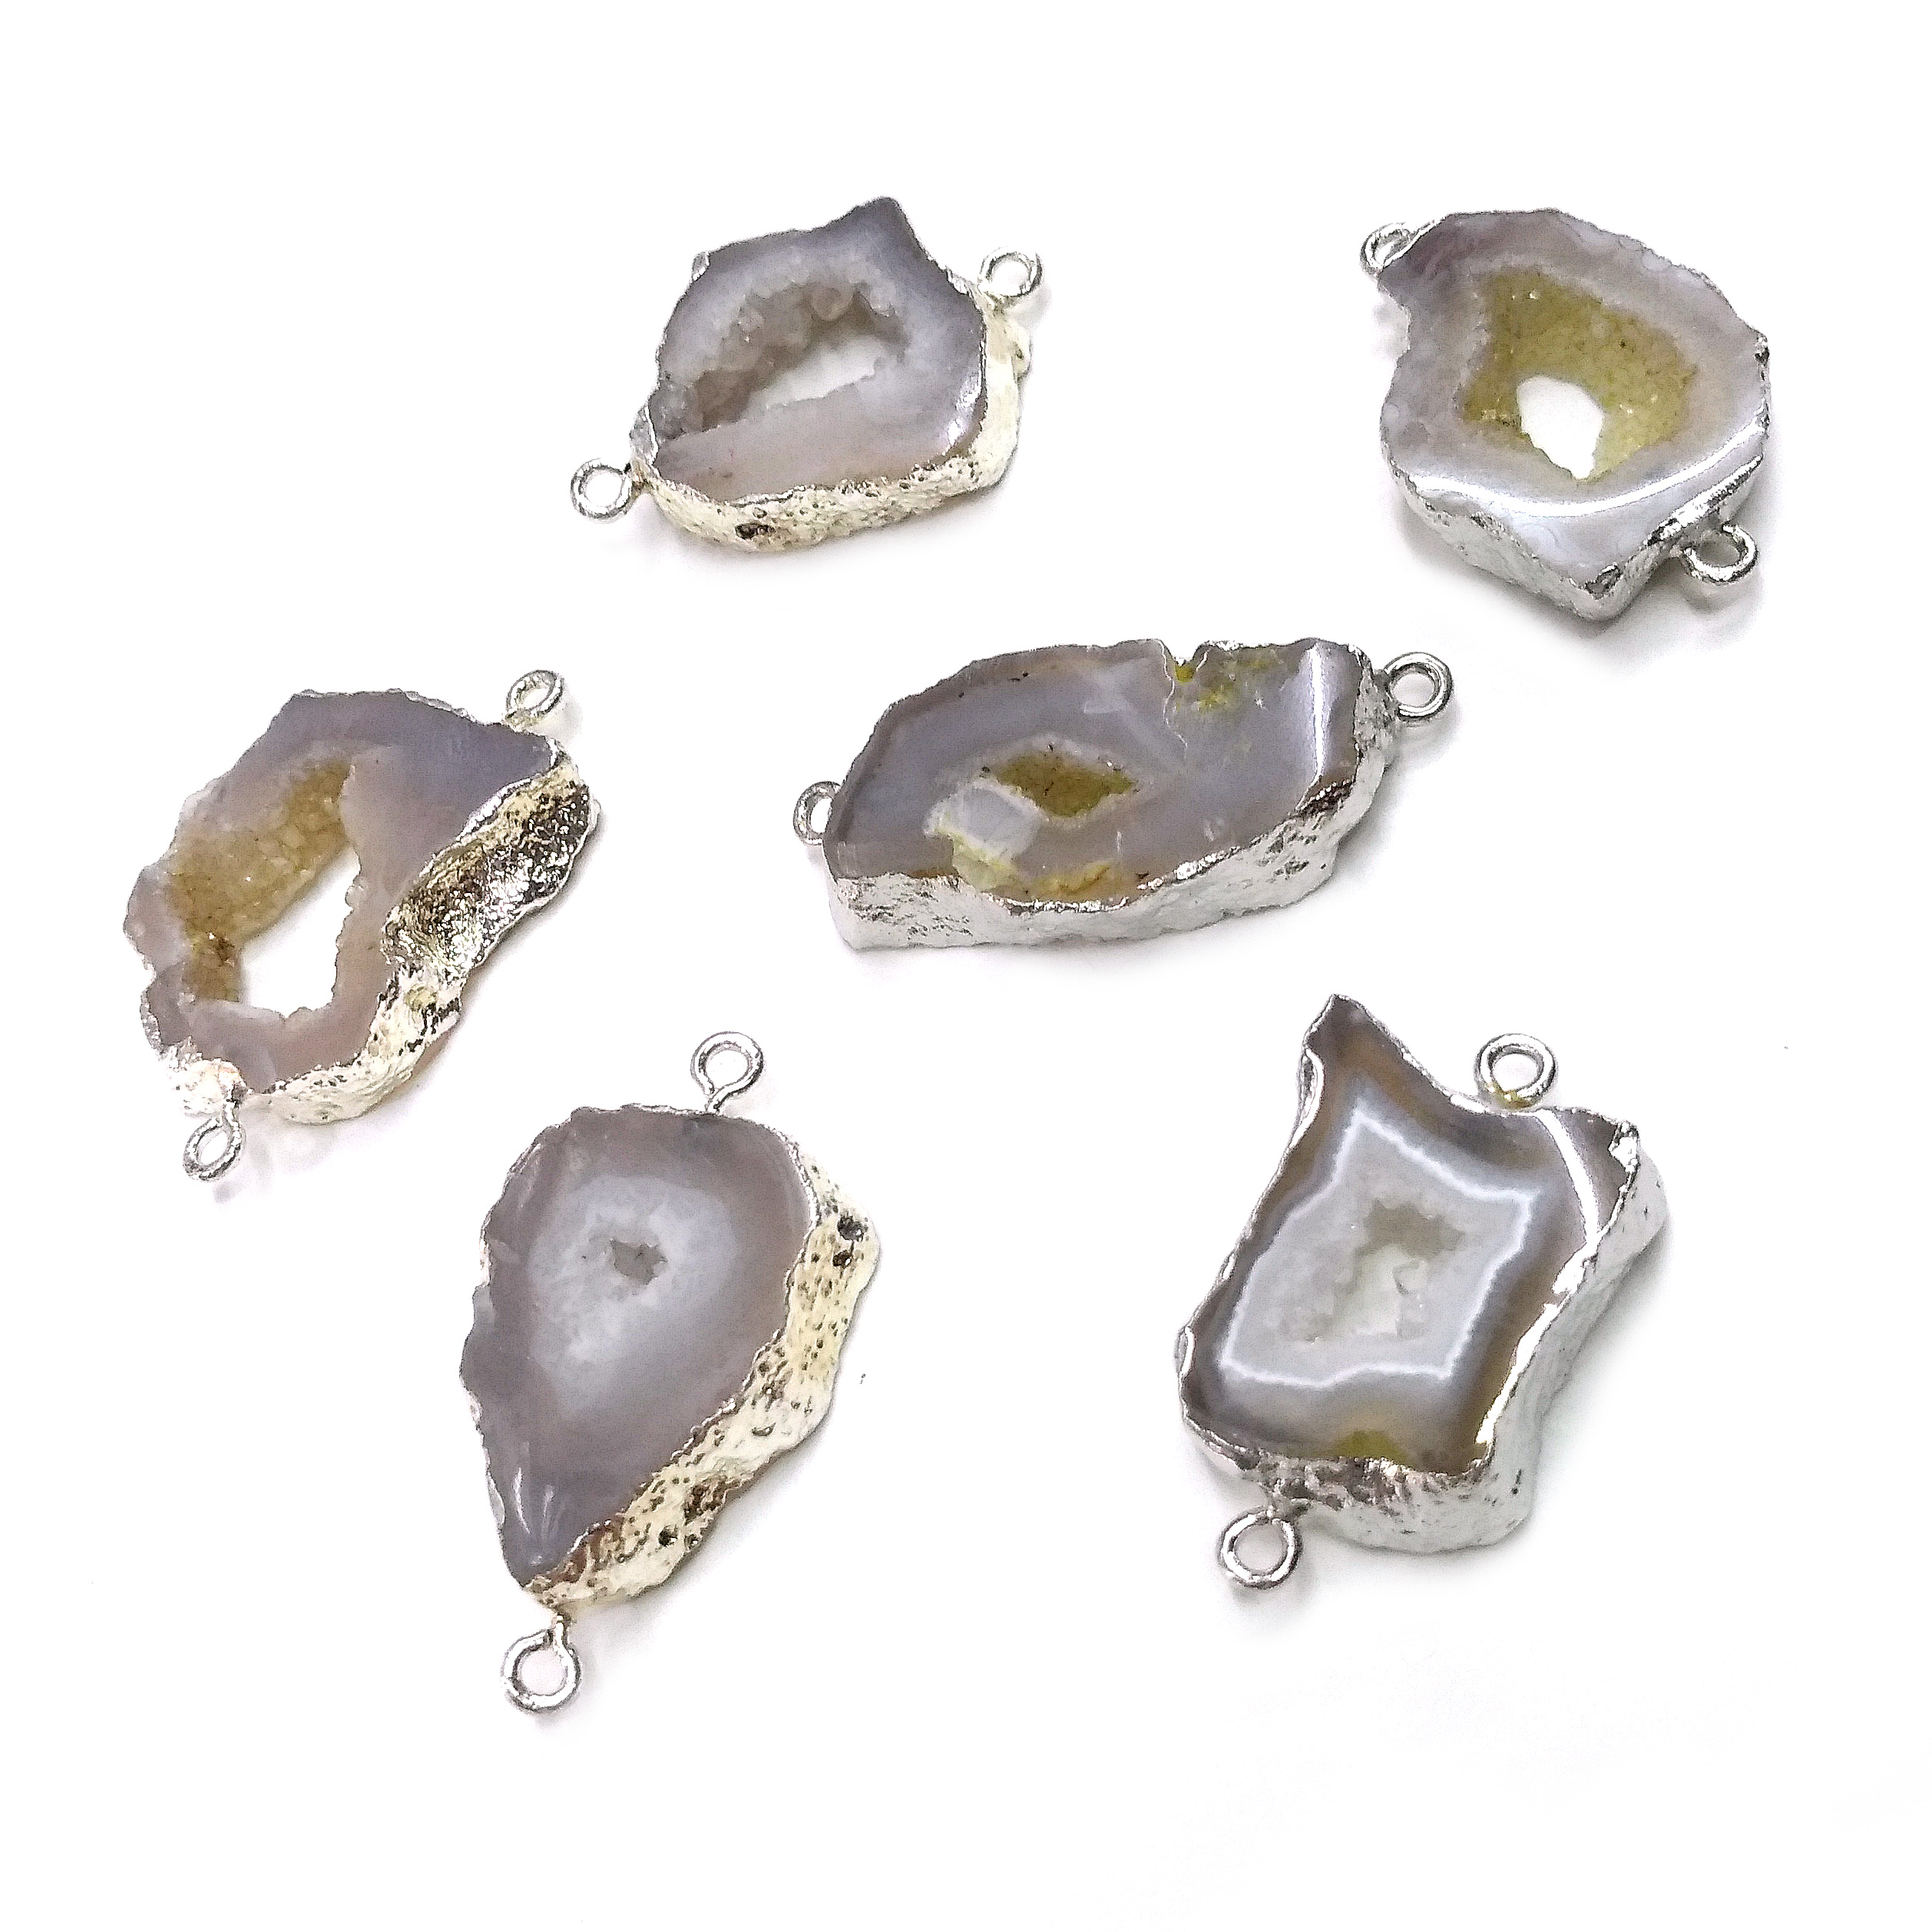 Natural Stone Slice Agates Pendants Irregular Shape Double Hole Connector For Jewelry Making DIY Necklace Bracelet Accessories